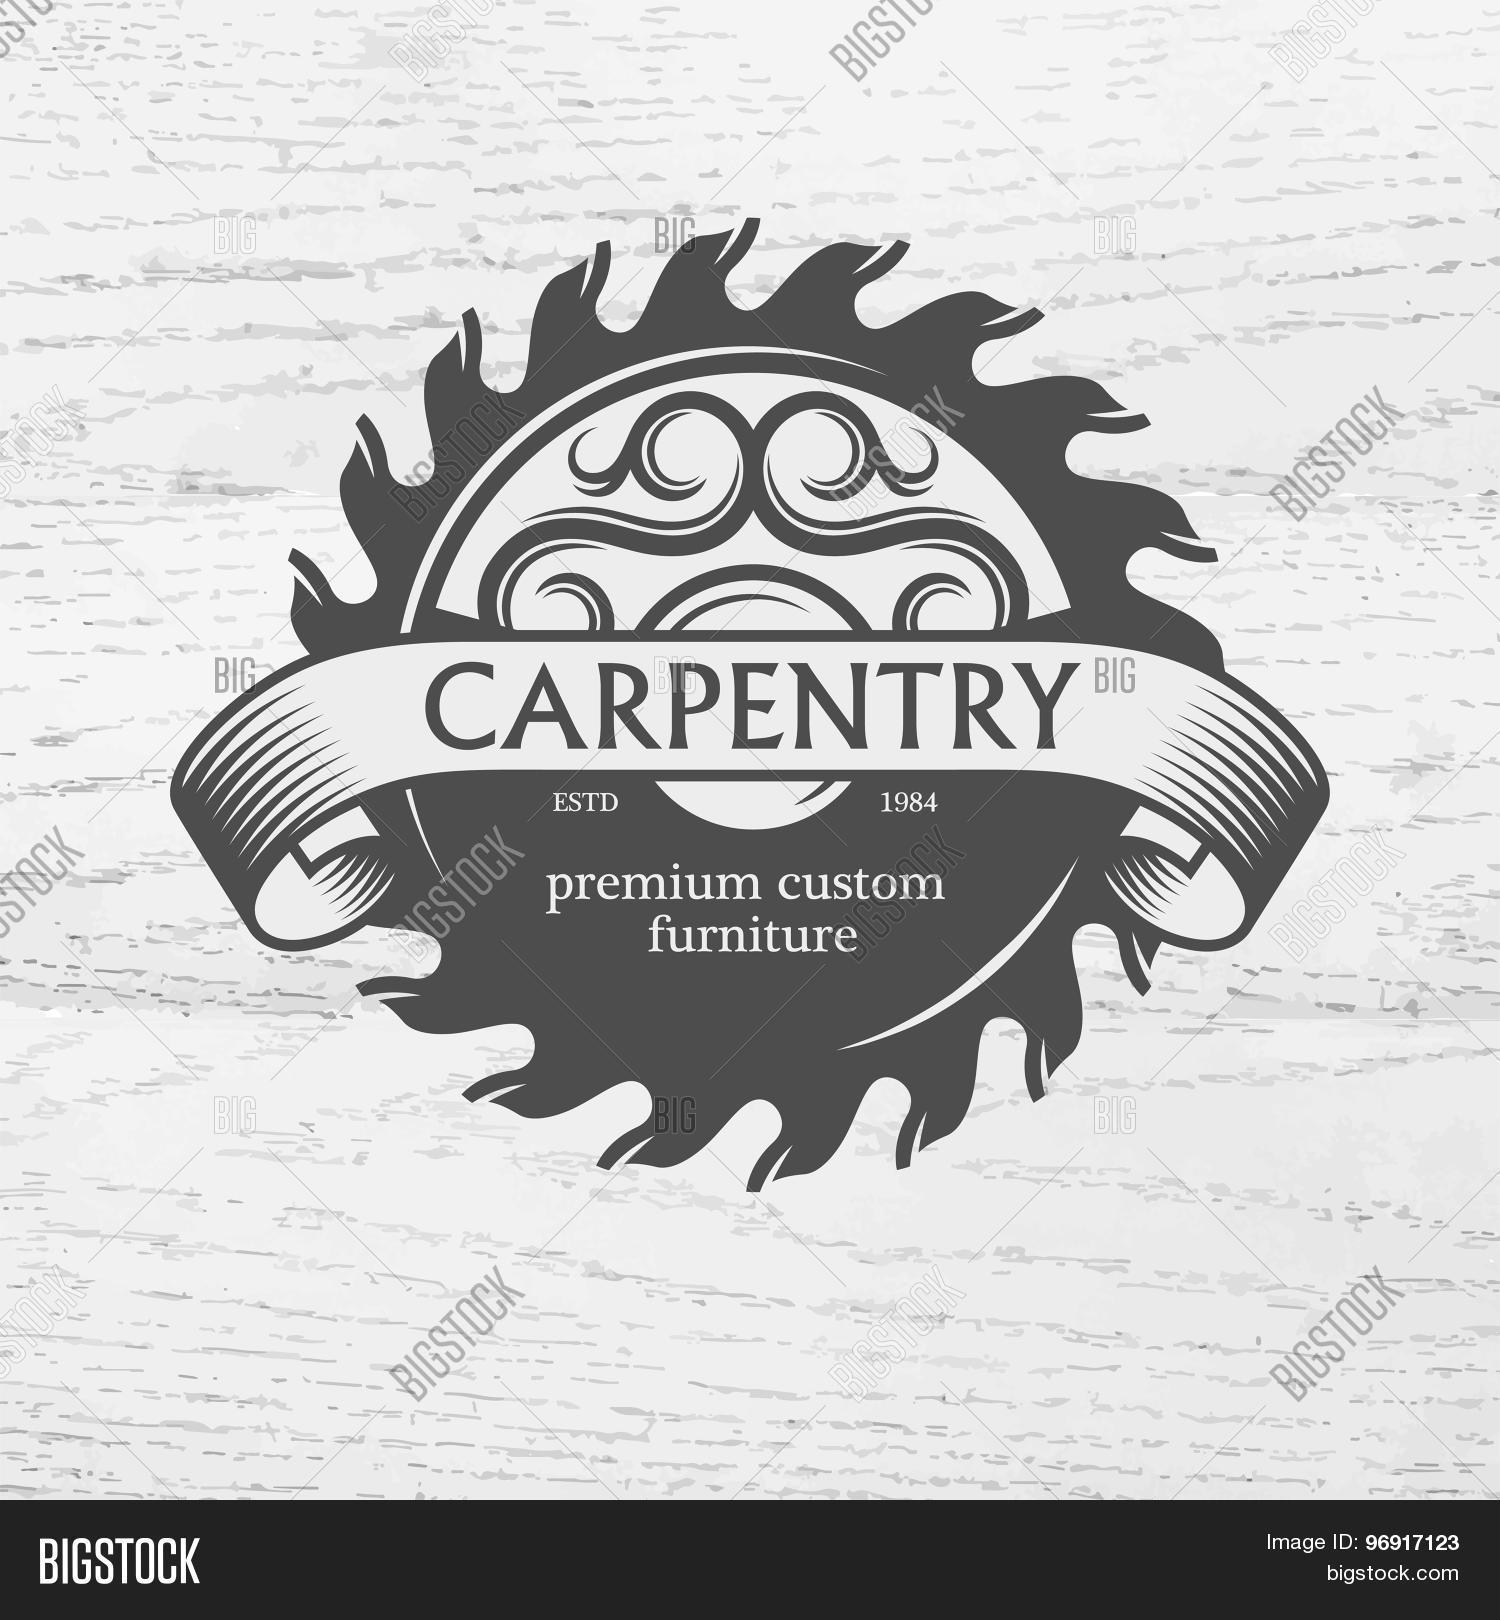 Carpenter Design Vector Photo Free Trial Bigstock